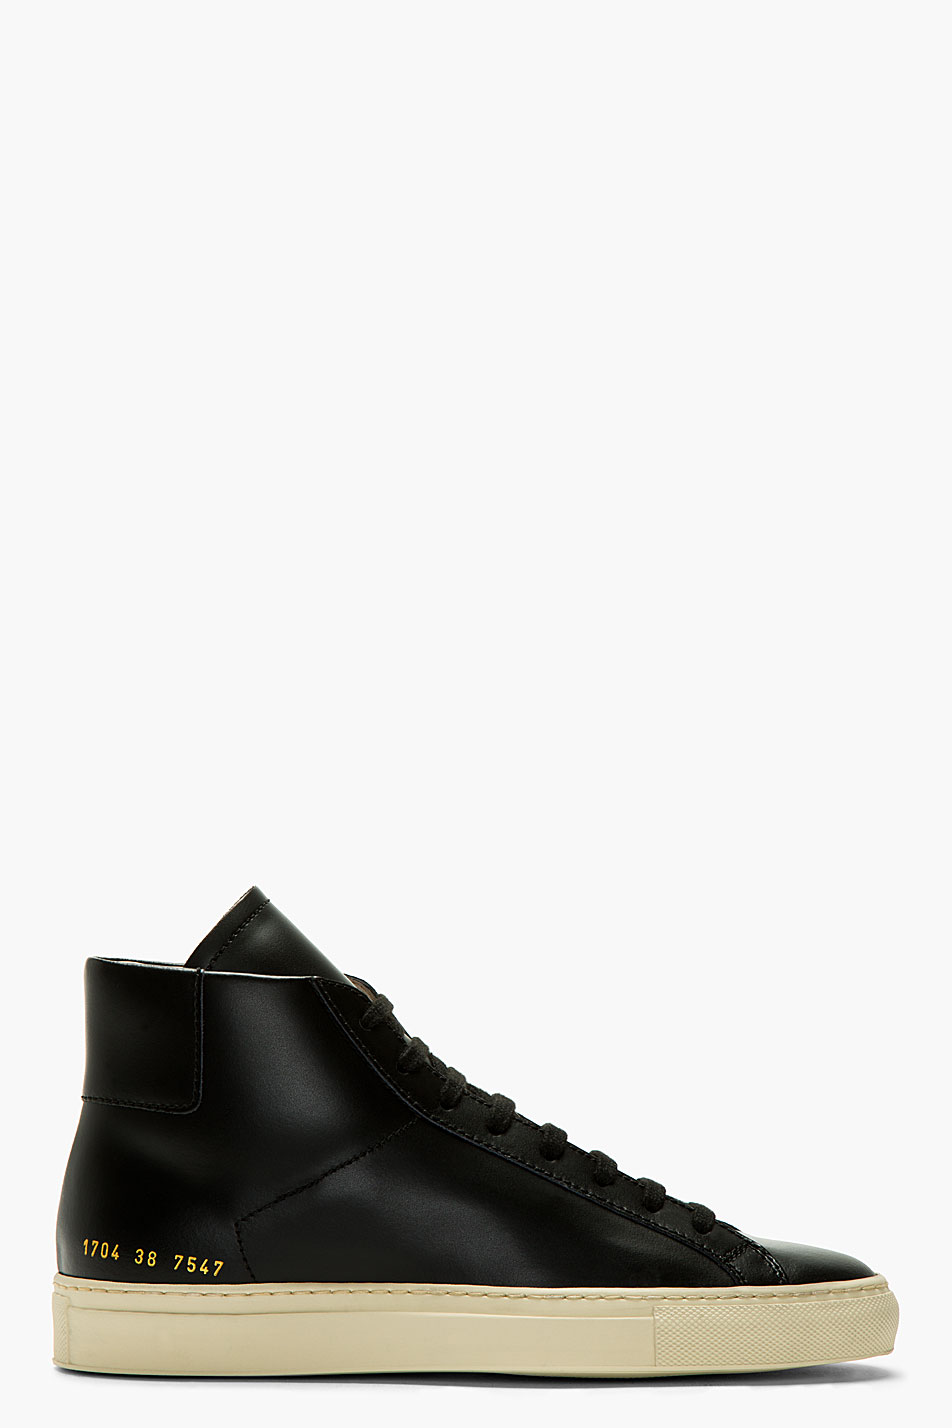 common projects black leather vintage high_top sneakers